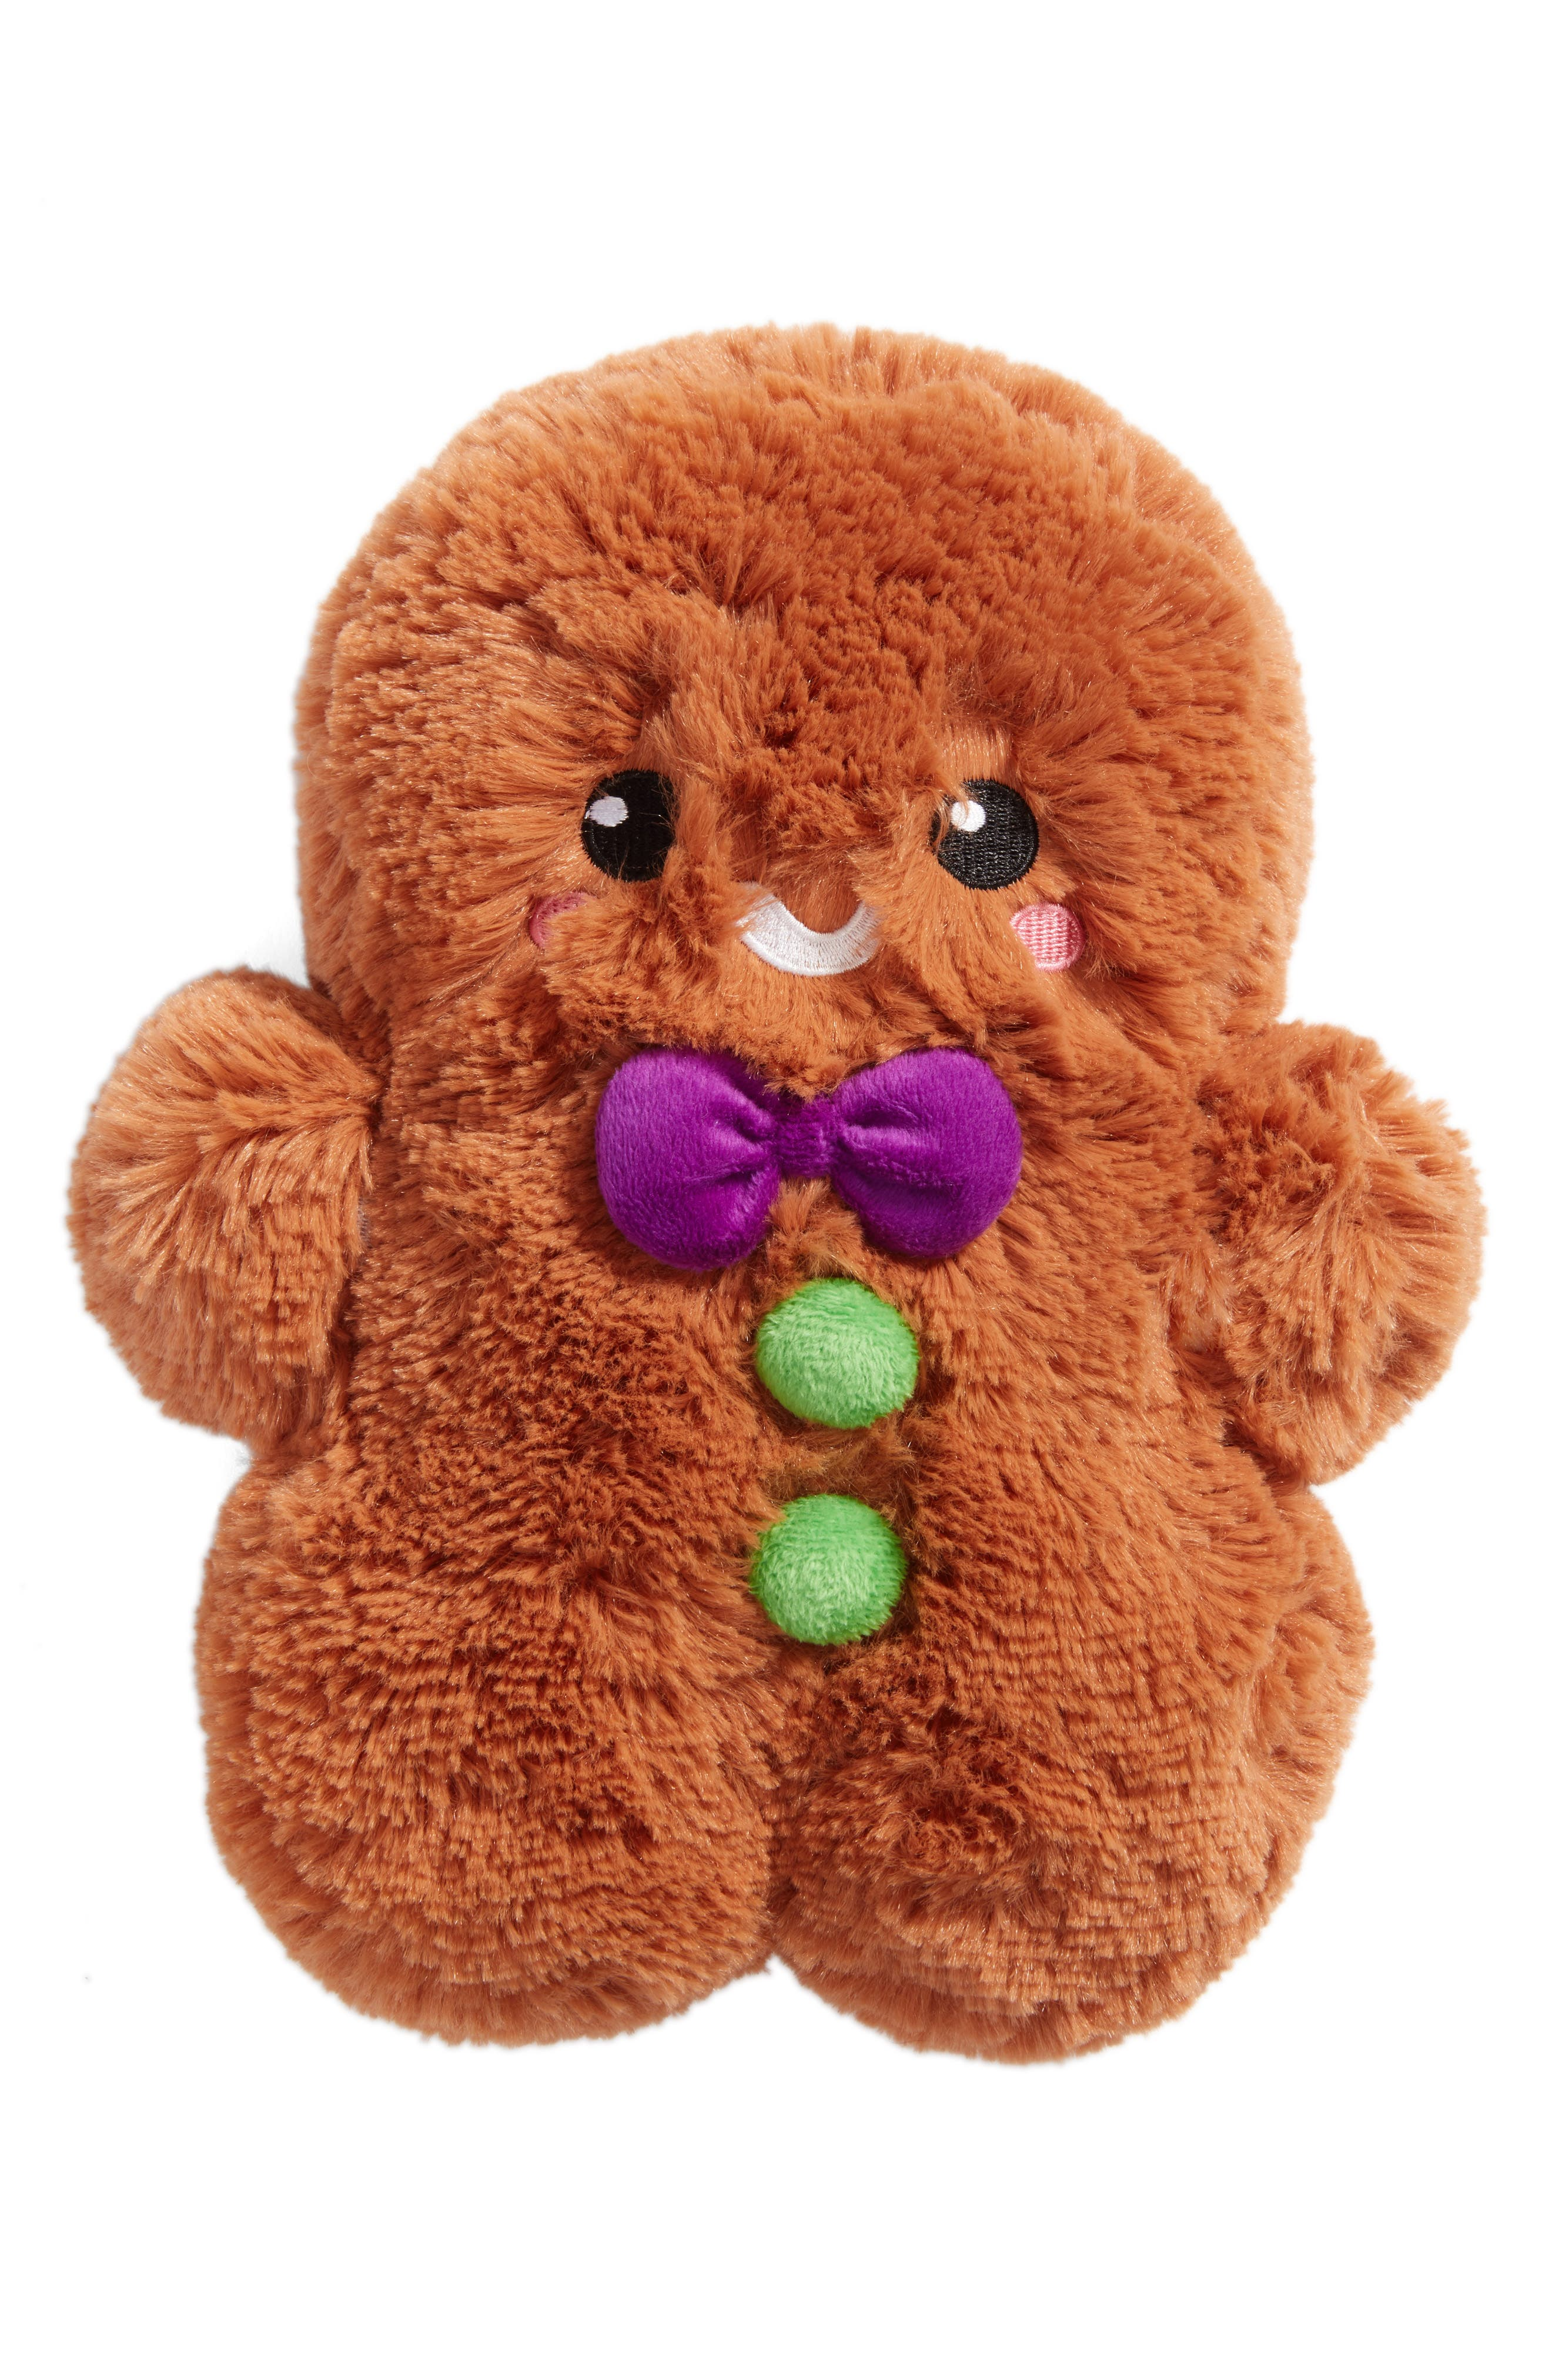 Alternate Image 1 Selected - Squishable Mini Gingerbread Man Stuffed Toy